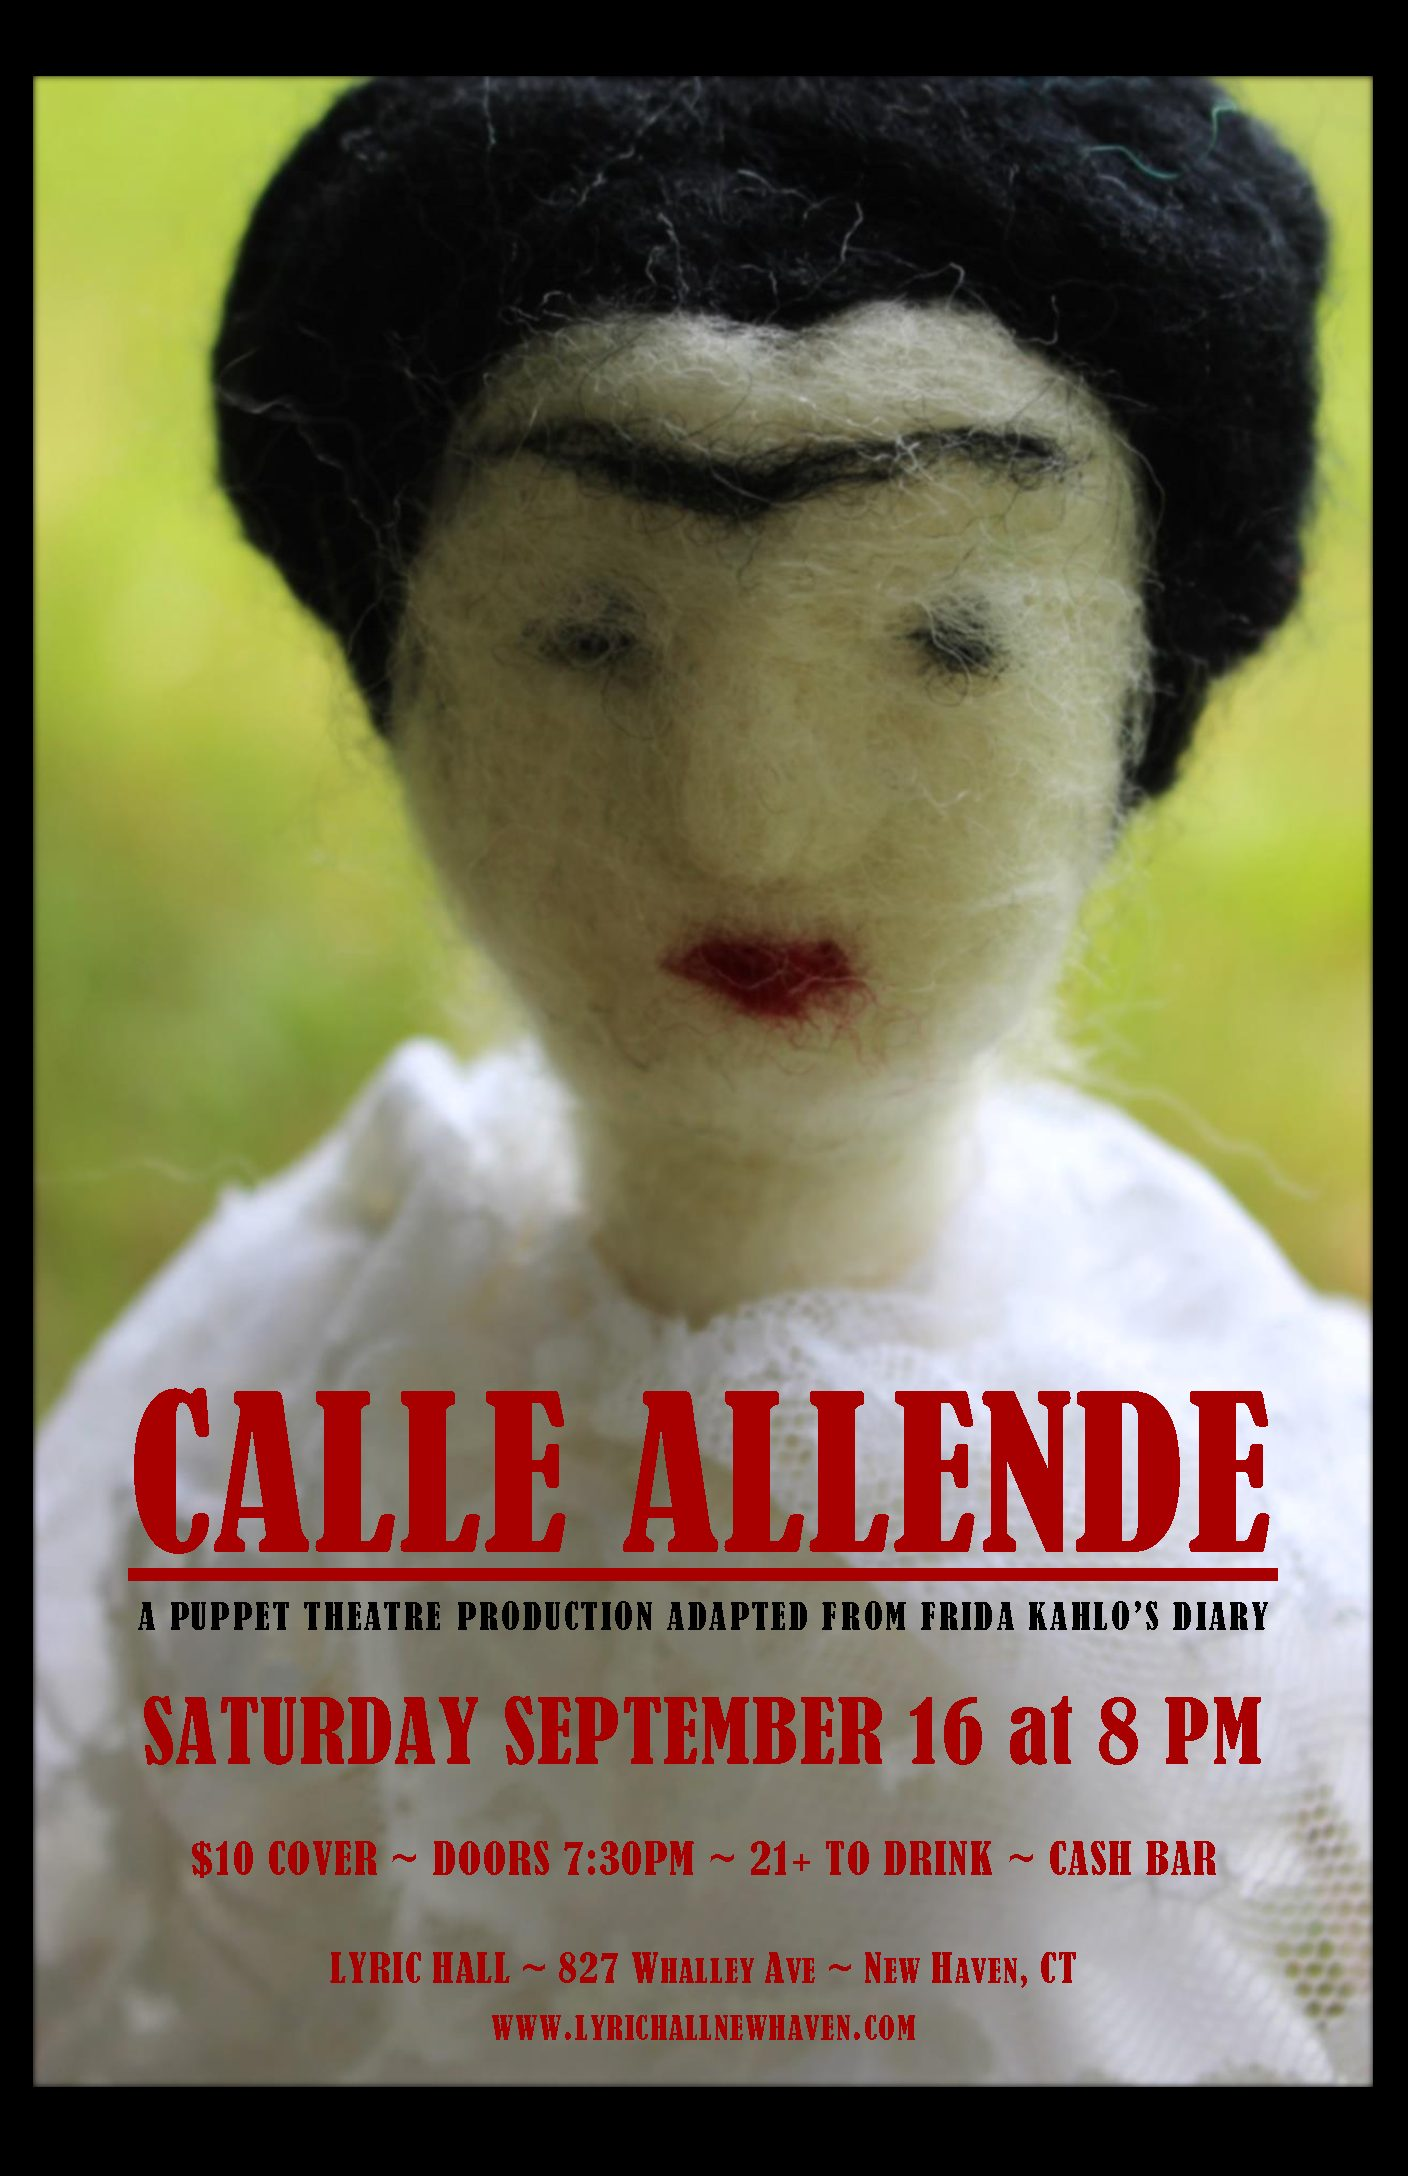 Calle Allende: A puppet theatre production